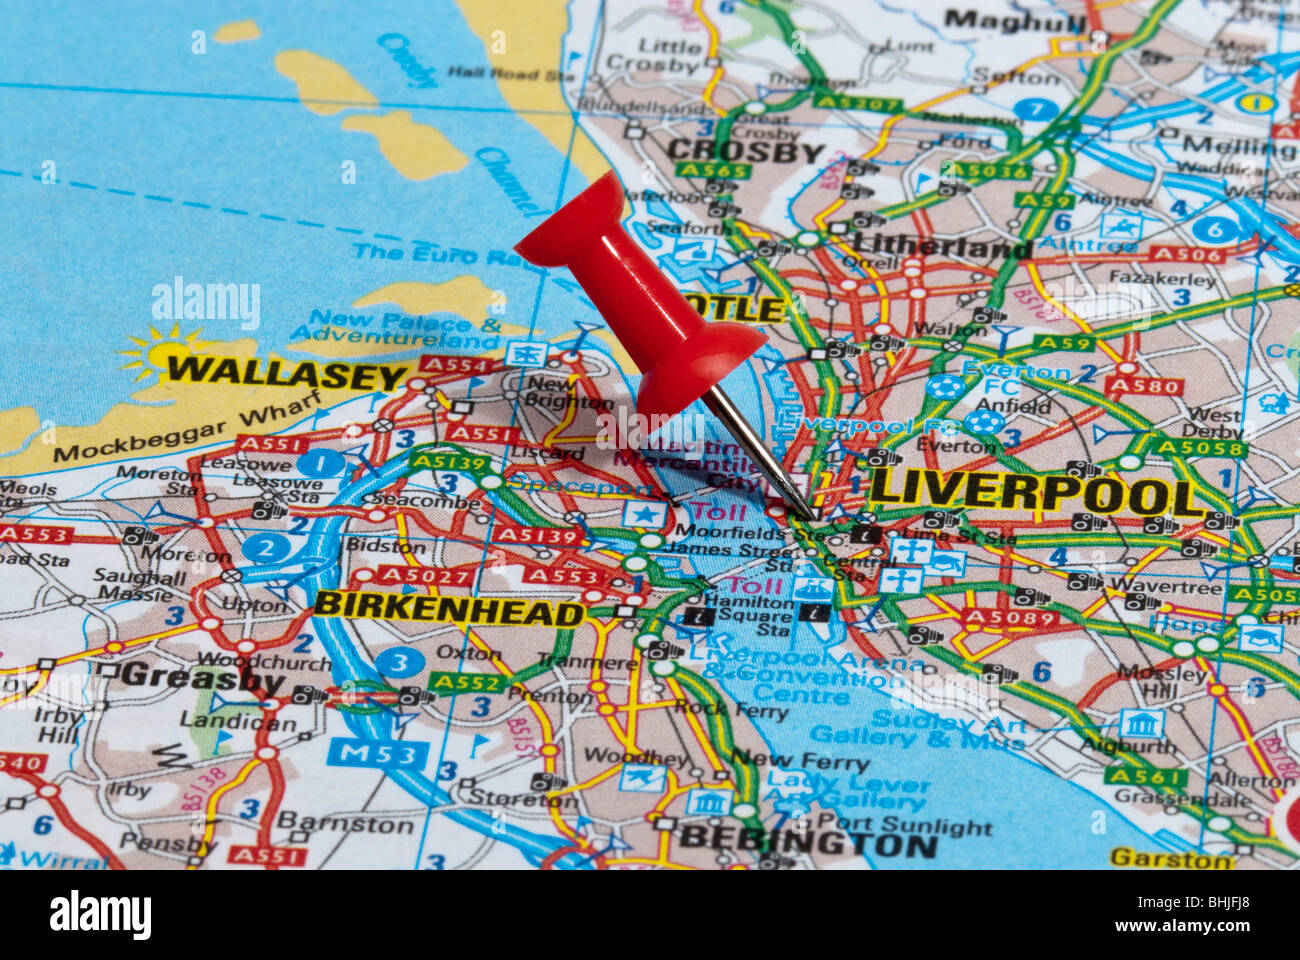 Road Map Liverpool England Stock Photos & Road Map Liverpool England ...